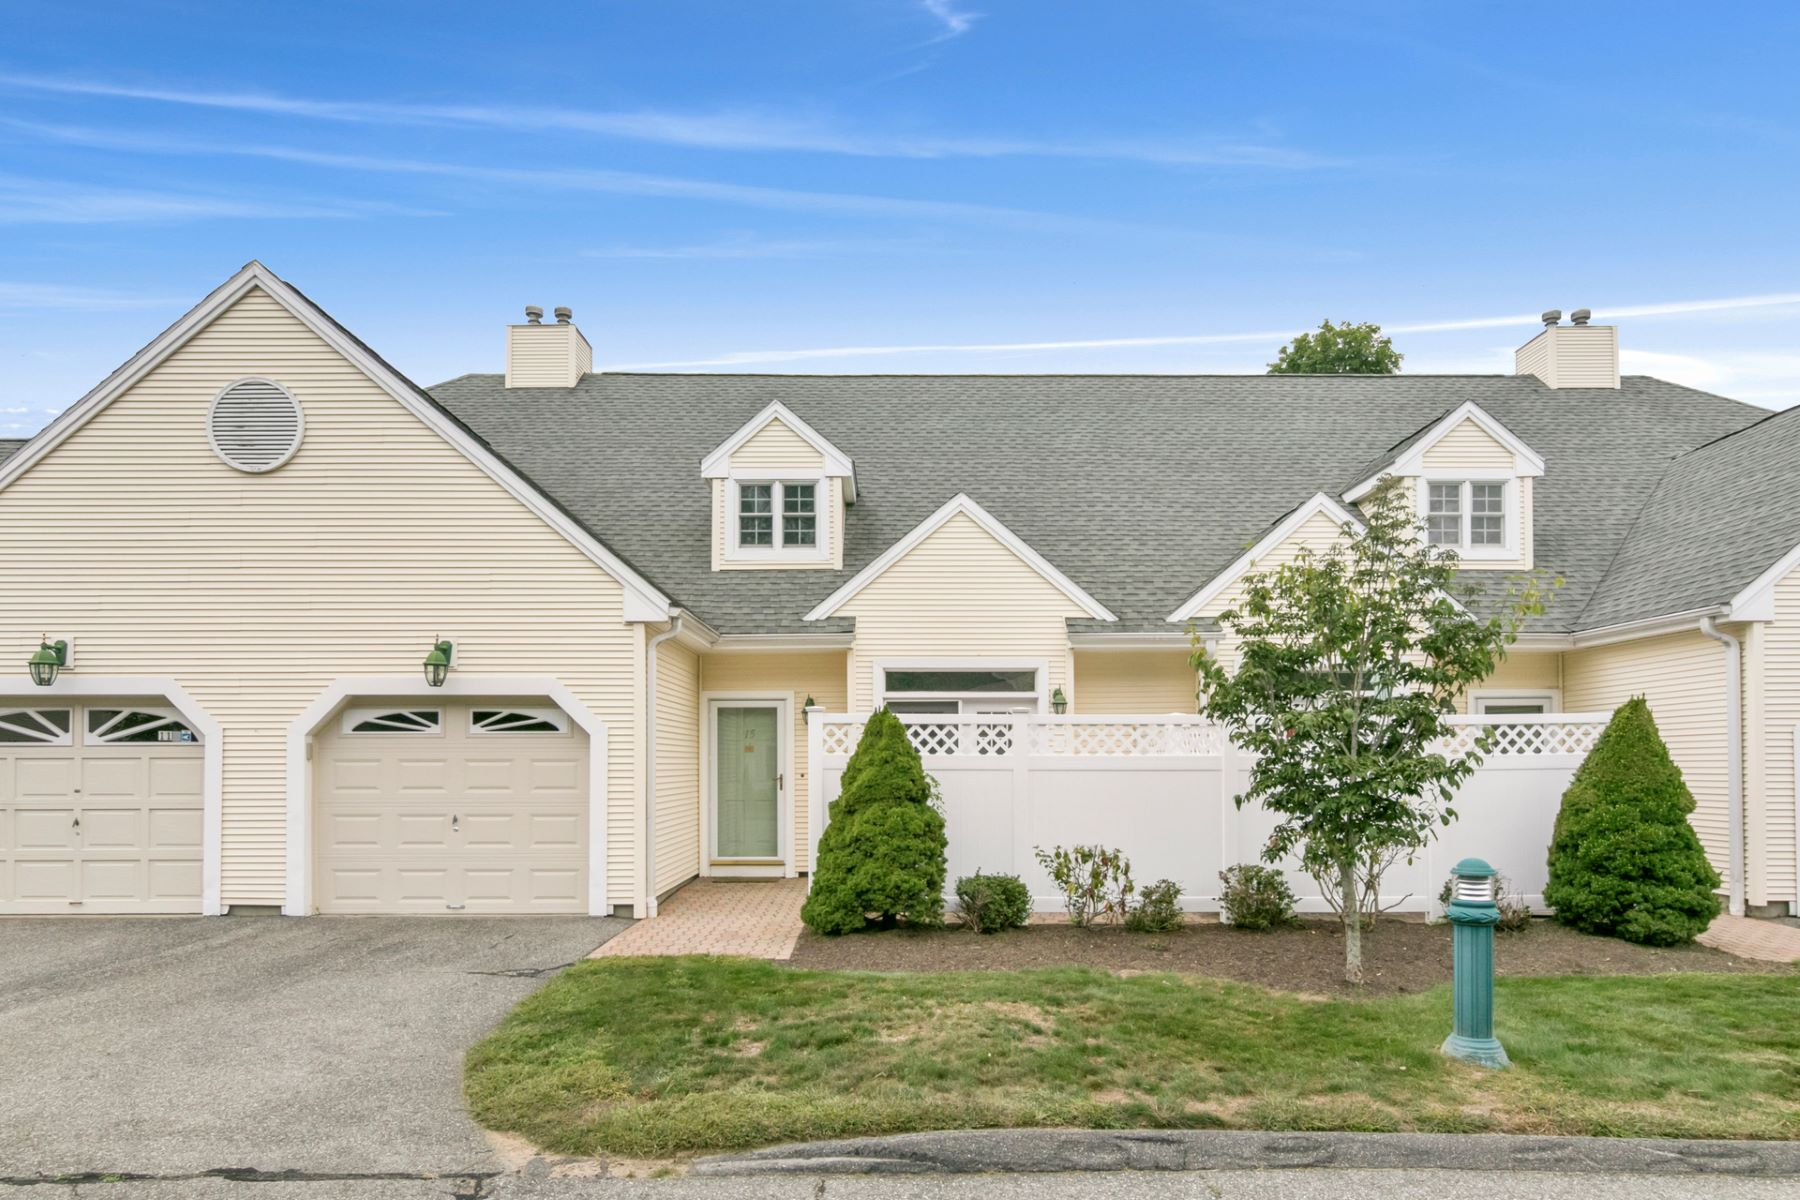 Condominiums for Sale at 15 Southwick Court North 15 Milford, Connecticut 06461 United States